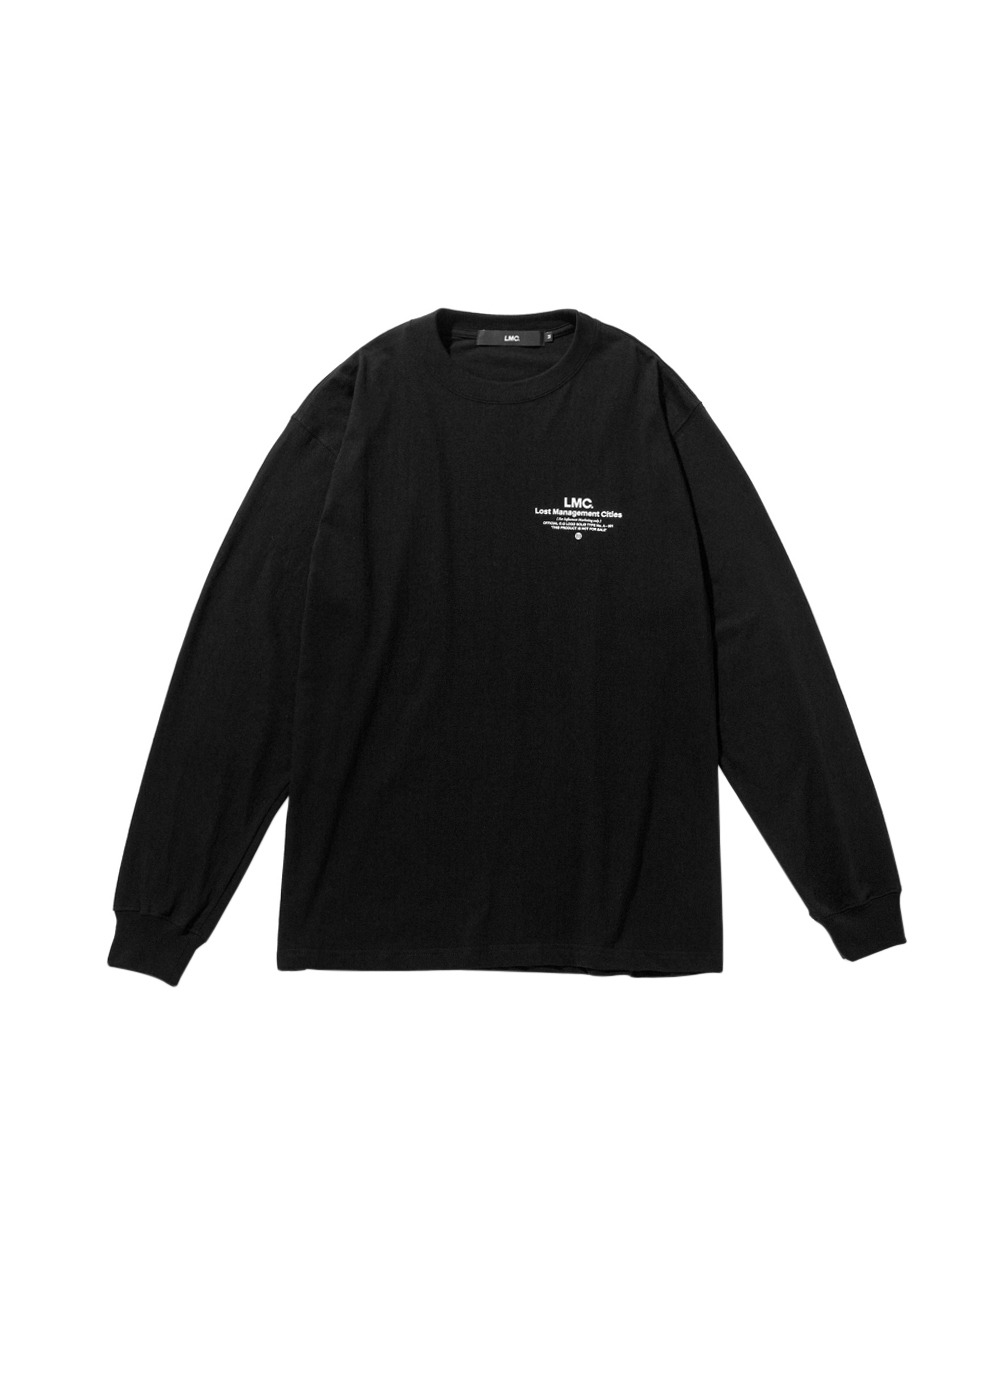 LMC INFLUENCER LONG SLV TEE black